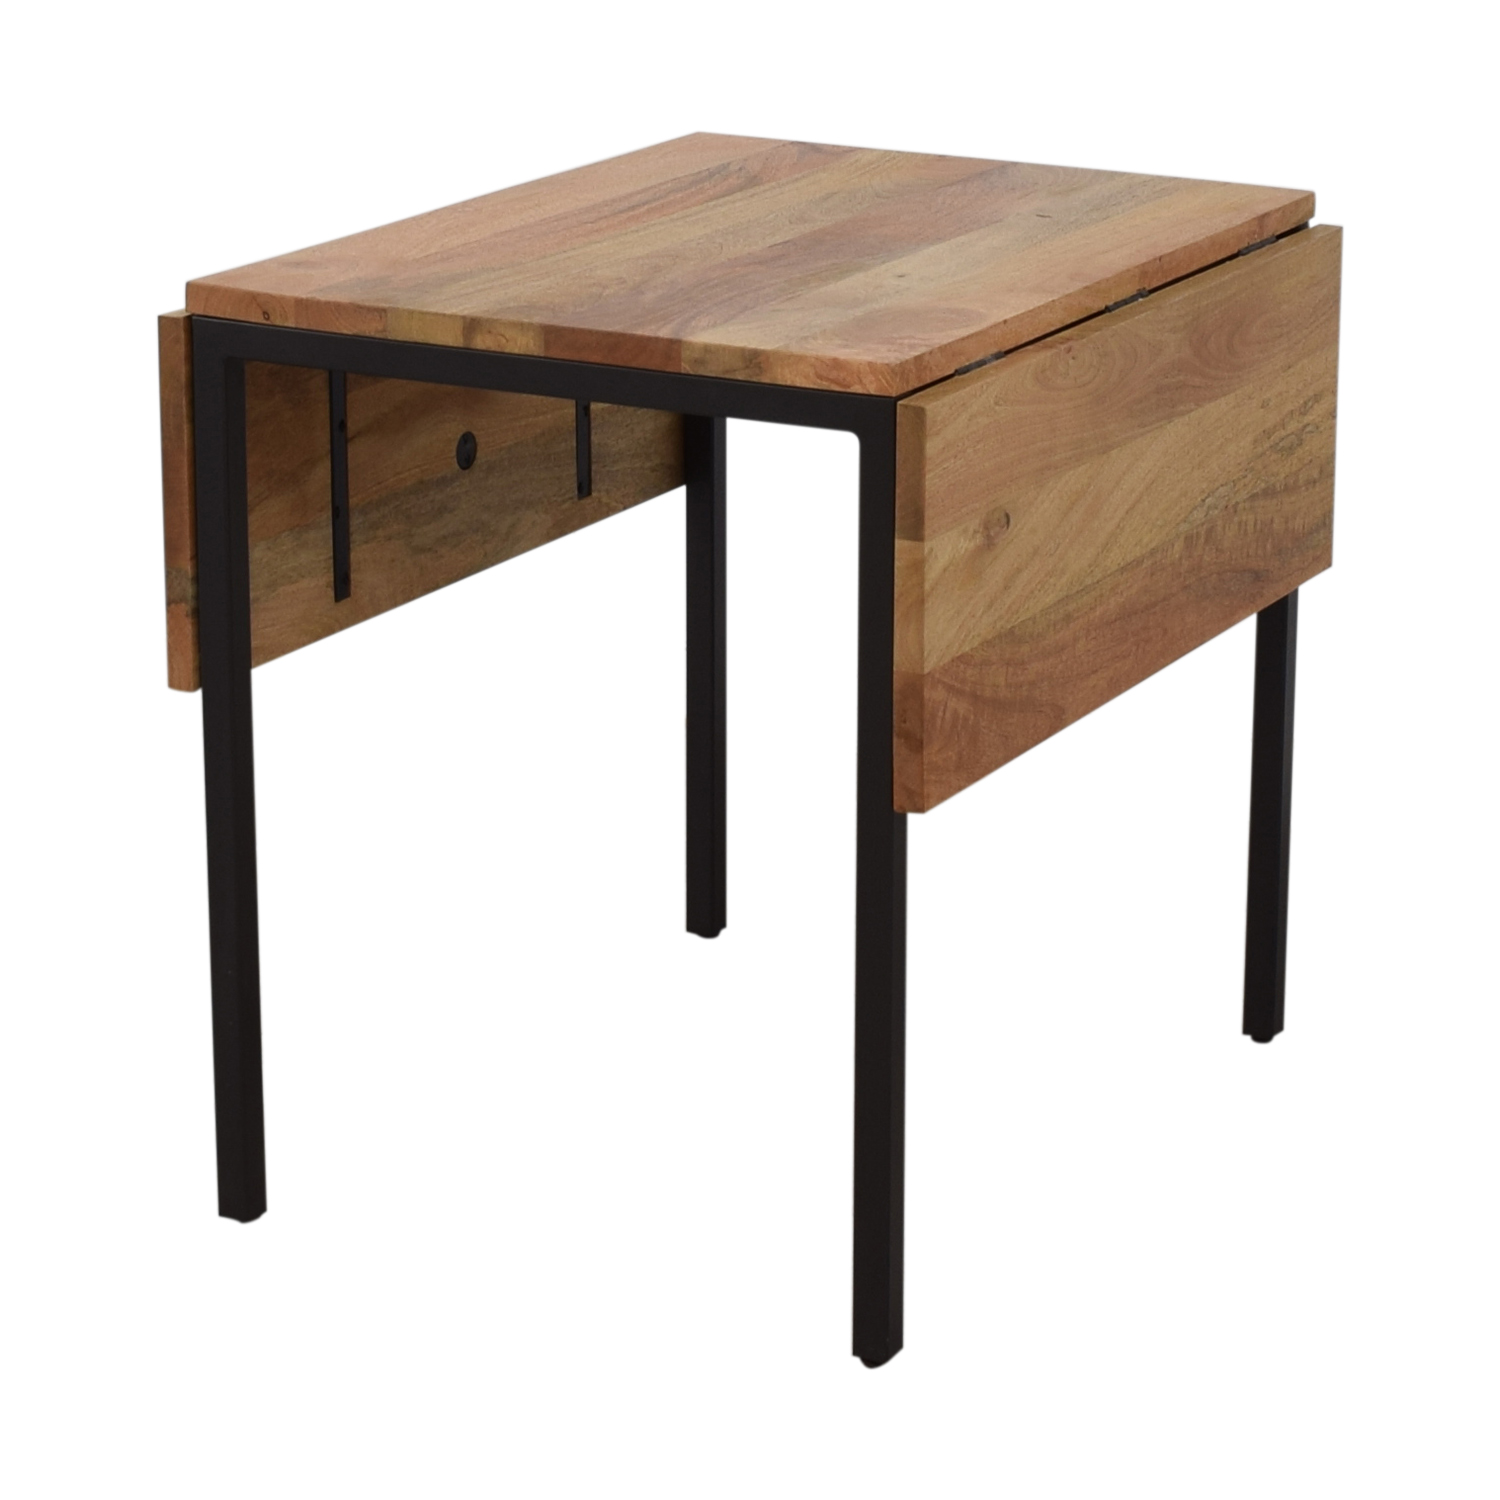 West Elm West Elm Box Frame Drop Leaf Expandable Table price